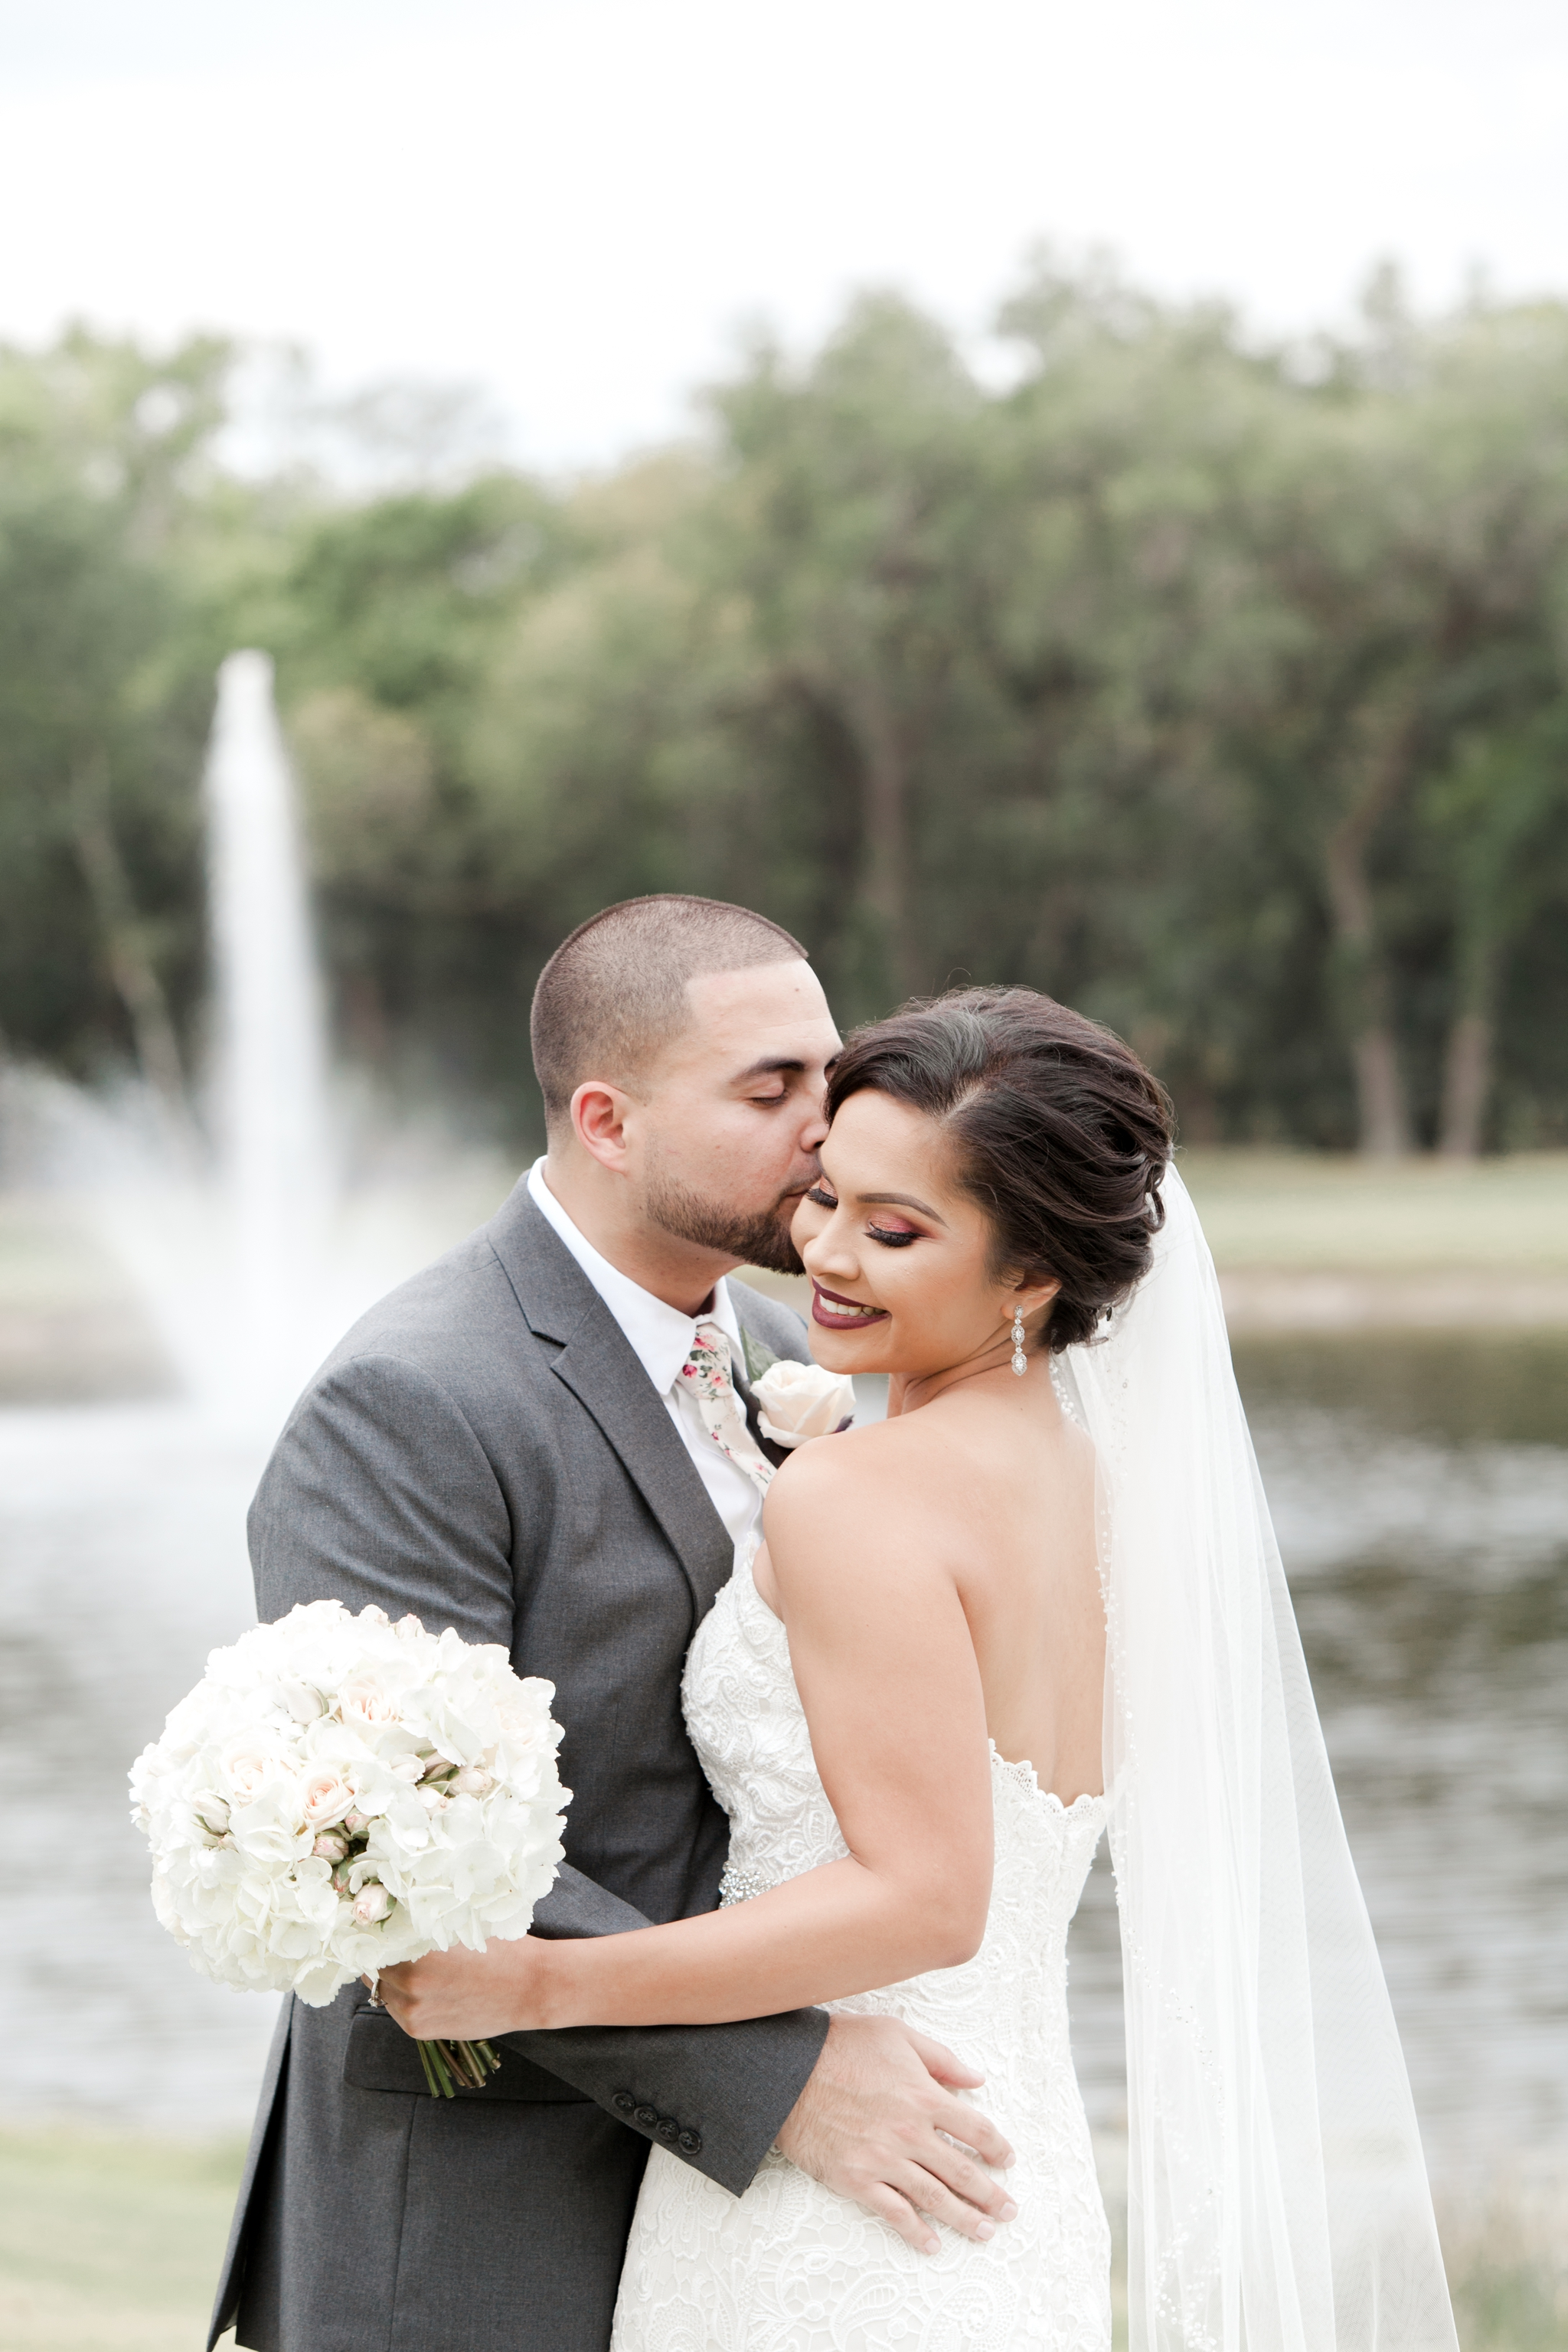 tampa-palms-wedding-christina-luis-IMG_0438.jpg